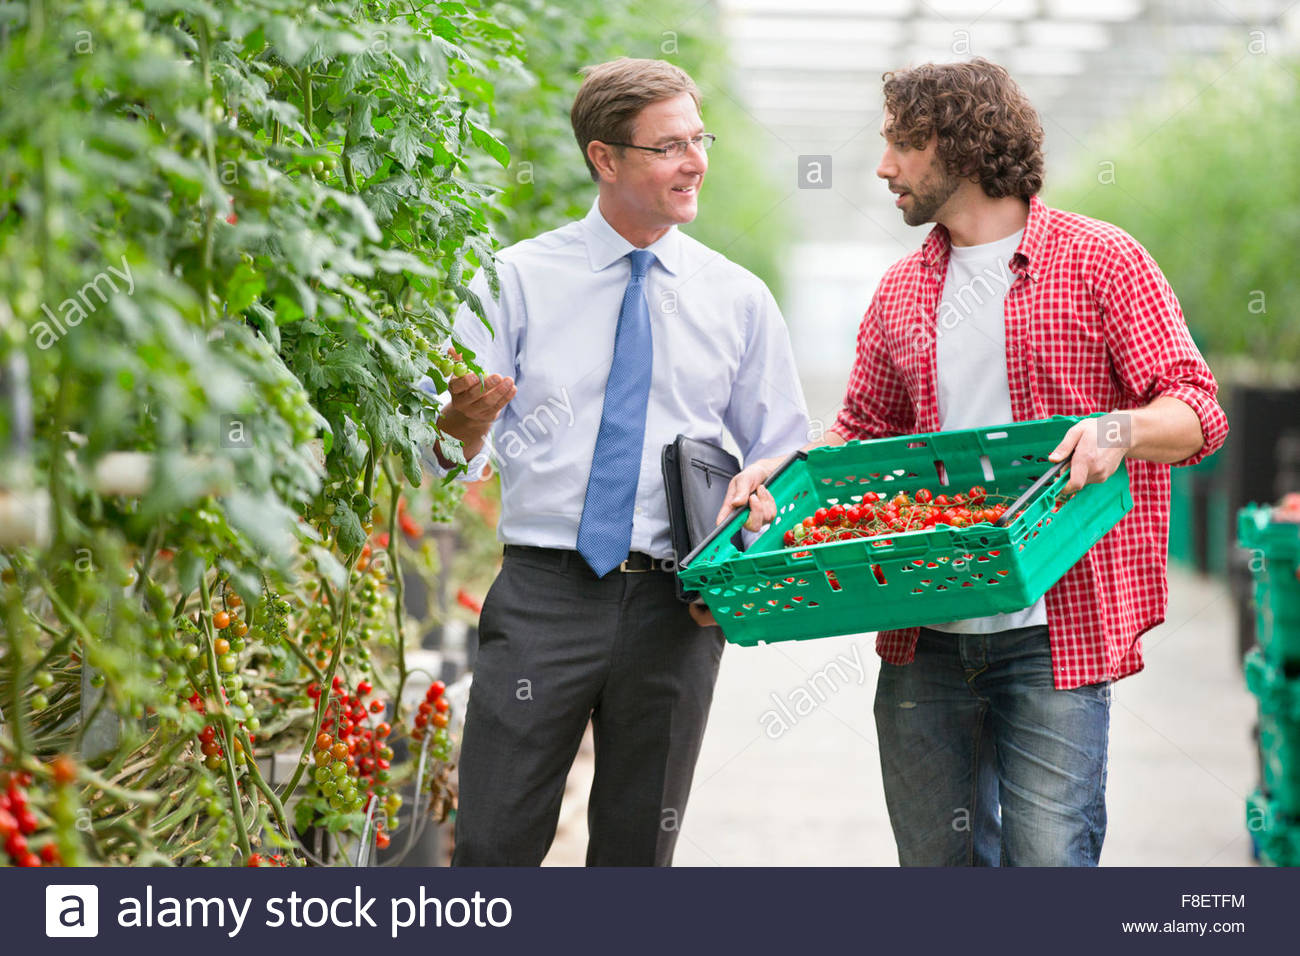 Businessman and grower discussing ripe vine tomatoes in greenhouse - Stock Image